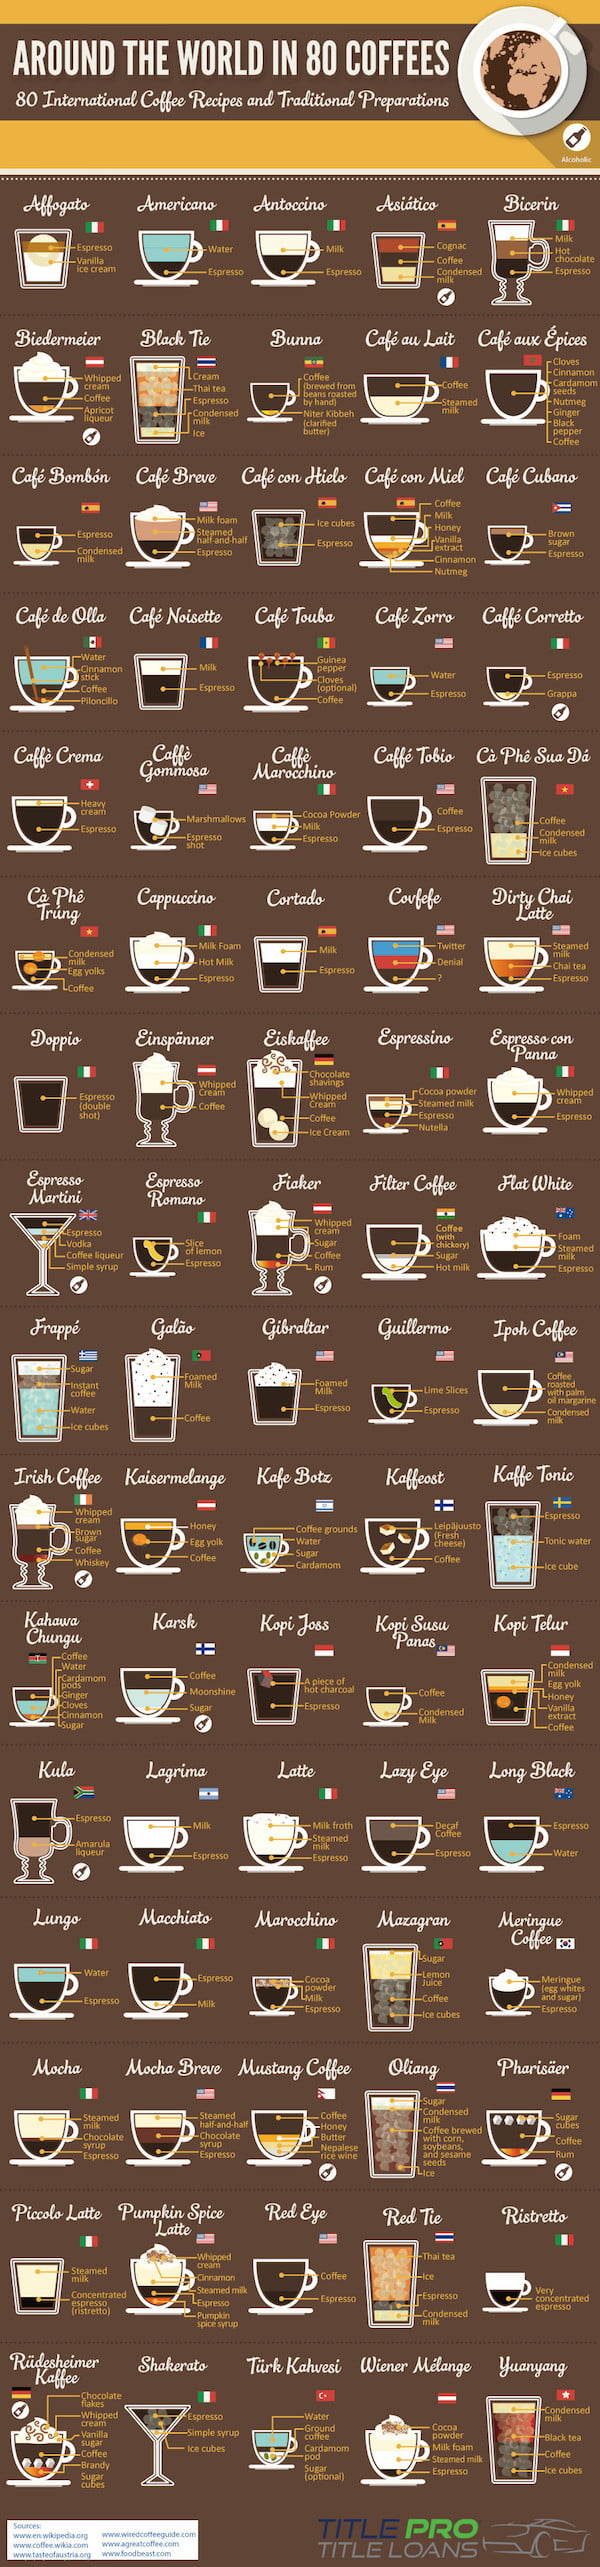 80 Coffee Recipes Around The World That Coffee Lovers Definitely Need To Try